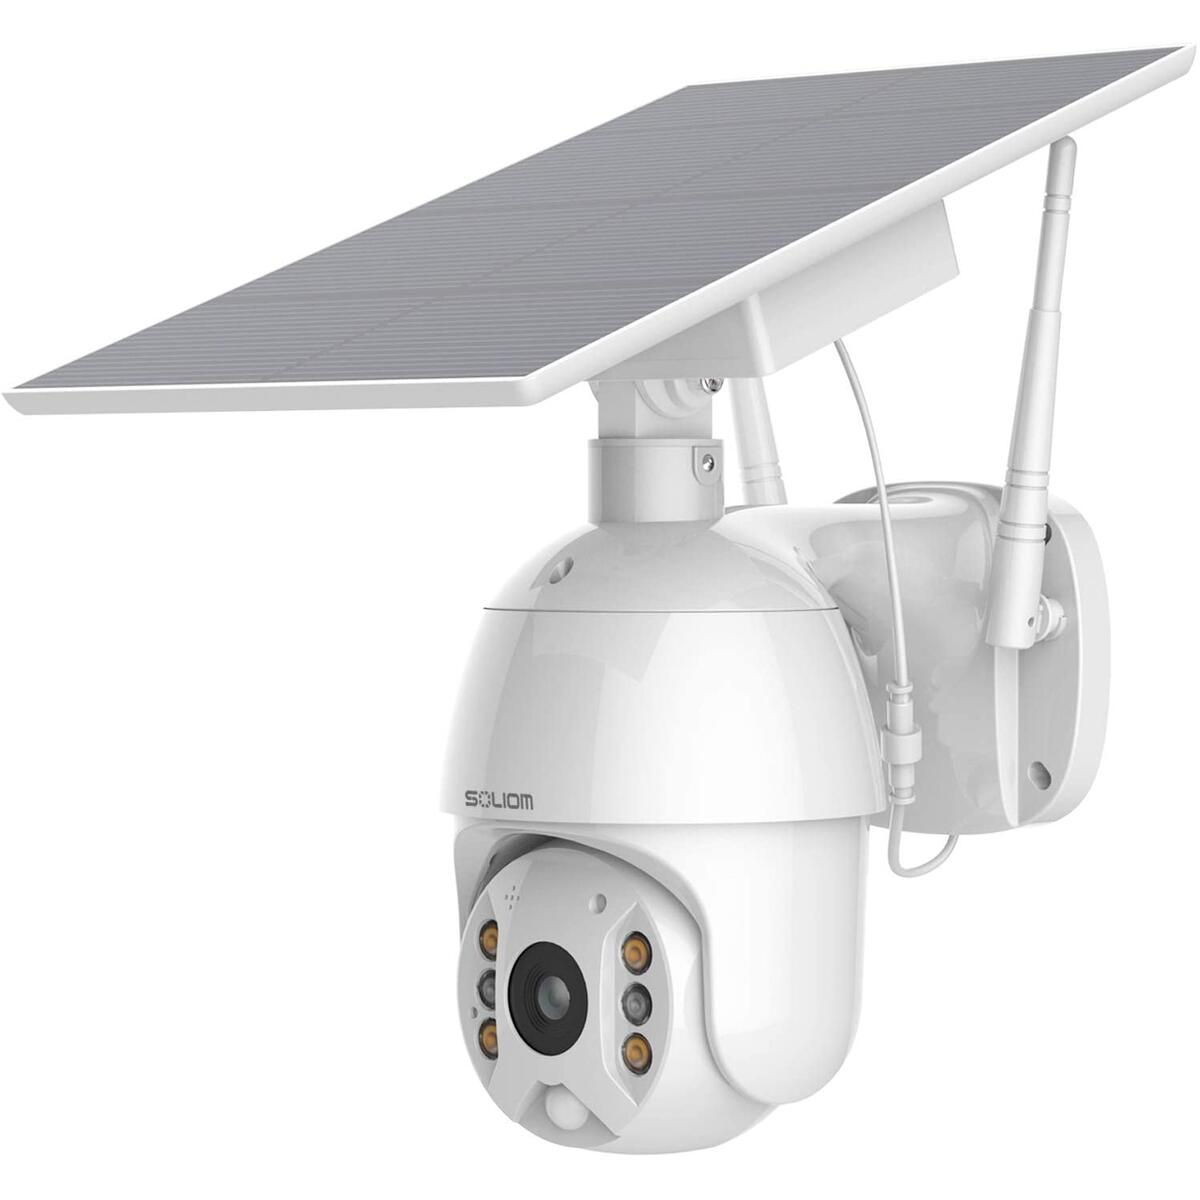 Security Camera Outdoor,Wireless WiFi Pan Tilt Spotlight Solar Battery Powered Motion Detection Home Camera with Color Night Vision,2.4G WiFi ,Secure Cloud/Sd Slot Storage -SOLIOM S600